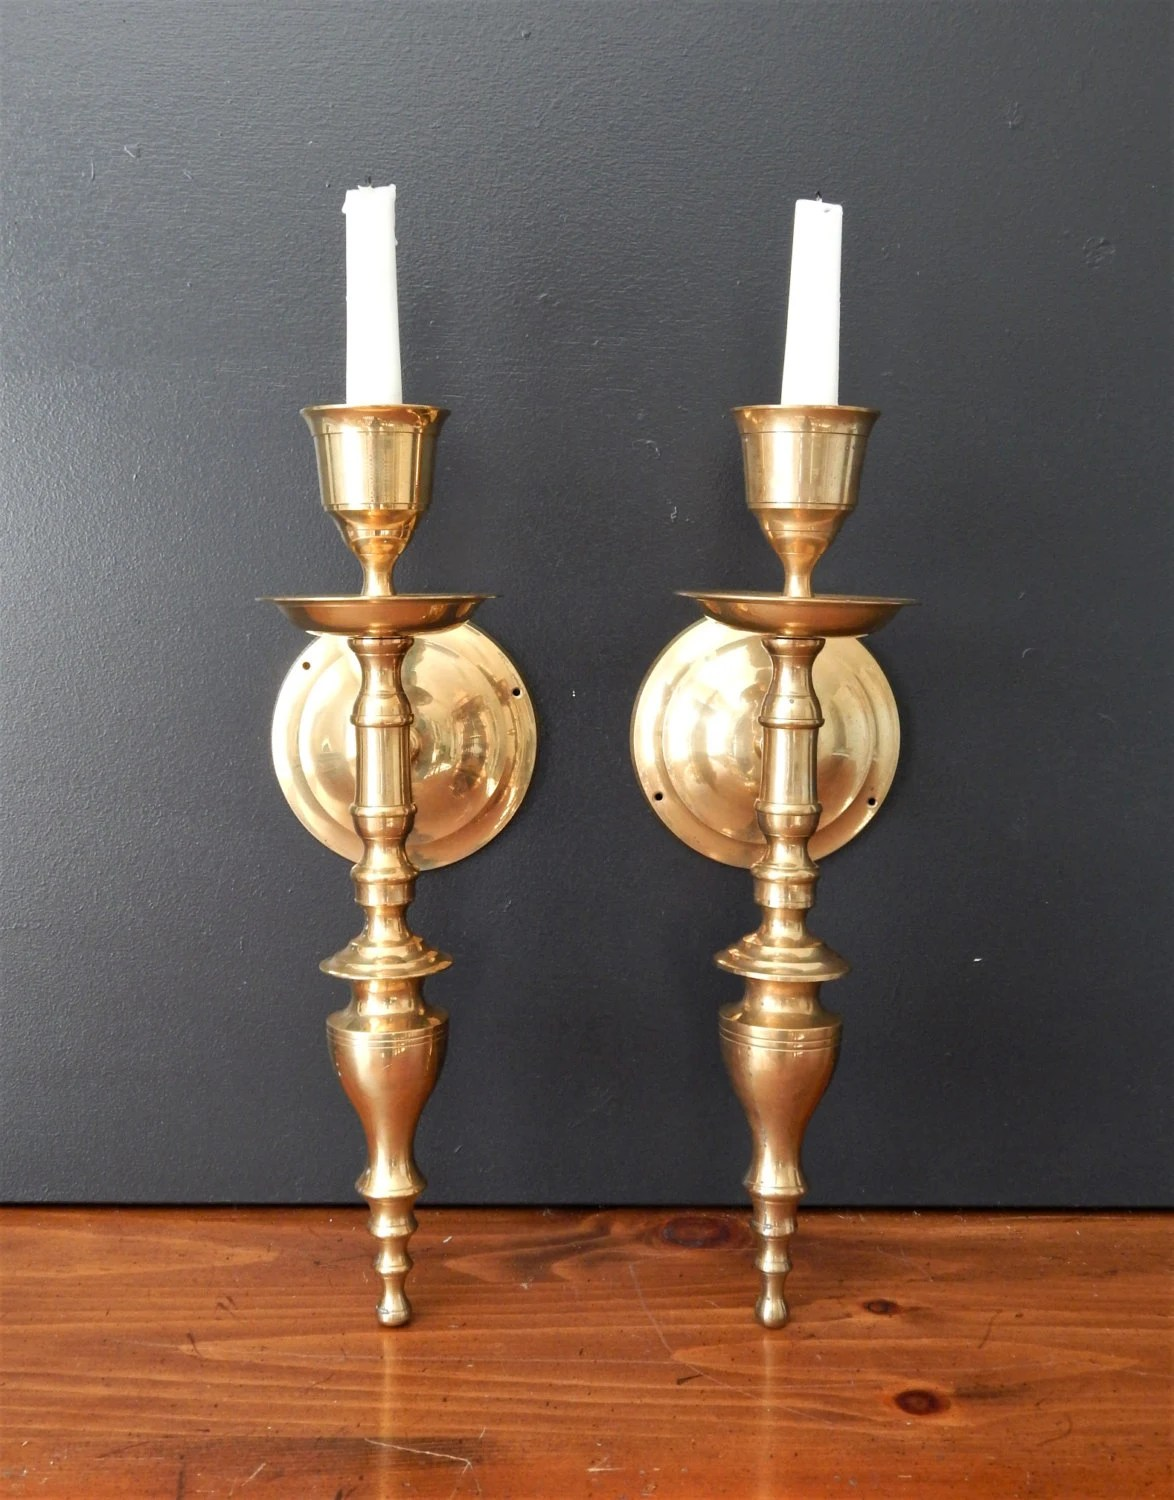 Large vintage brass candle sconces/Candle by ... on Large Wall Sconces Candle Holders Decorative id=23322